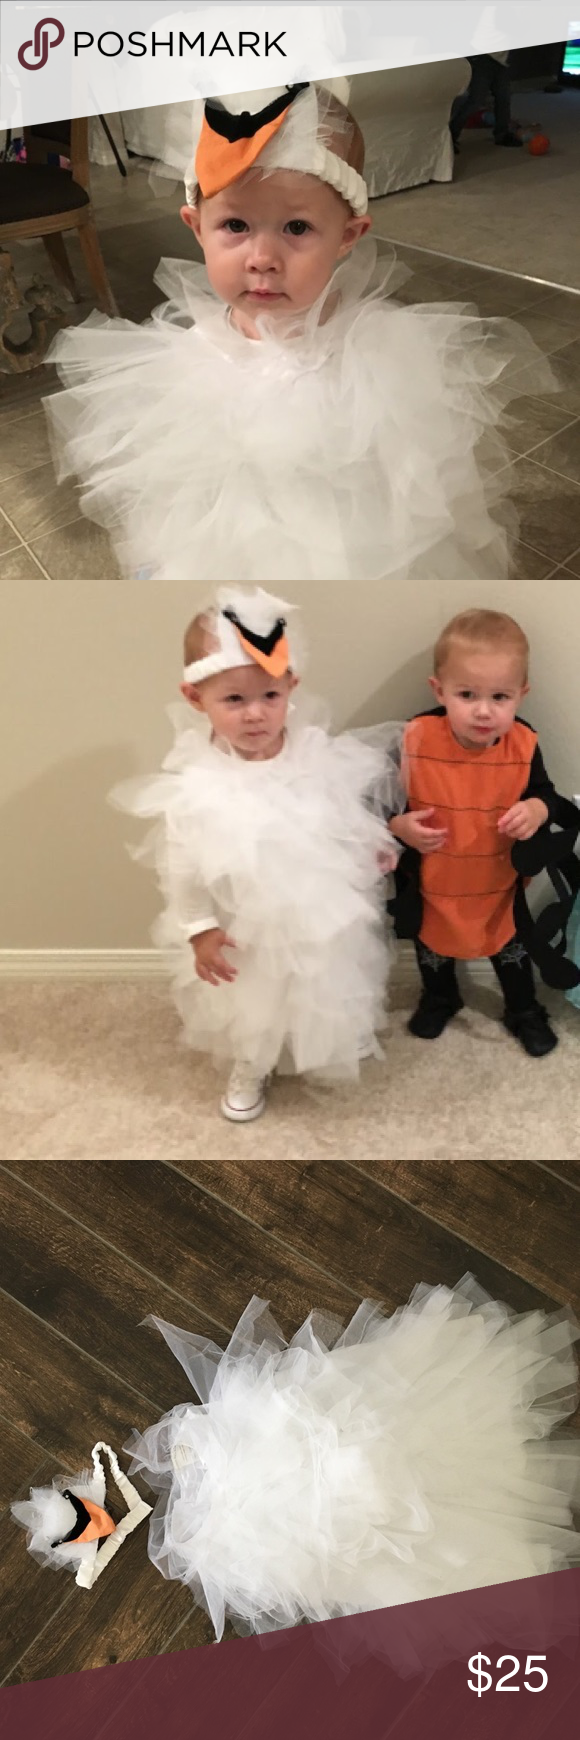 Pottery Barn tulle swan costume  sc 1 st  Pinterest & Pottery Barn tulle swan costume | Head piece Swans and Costumes